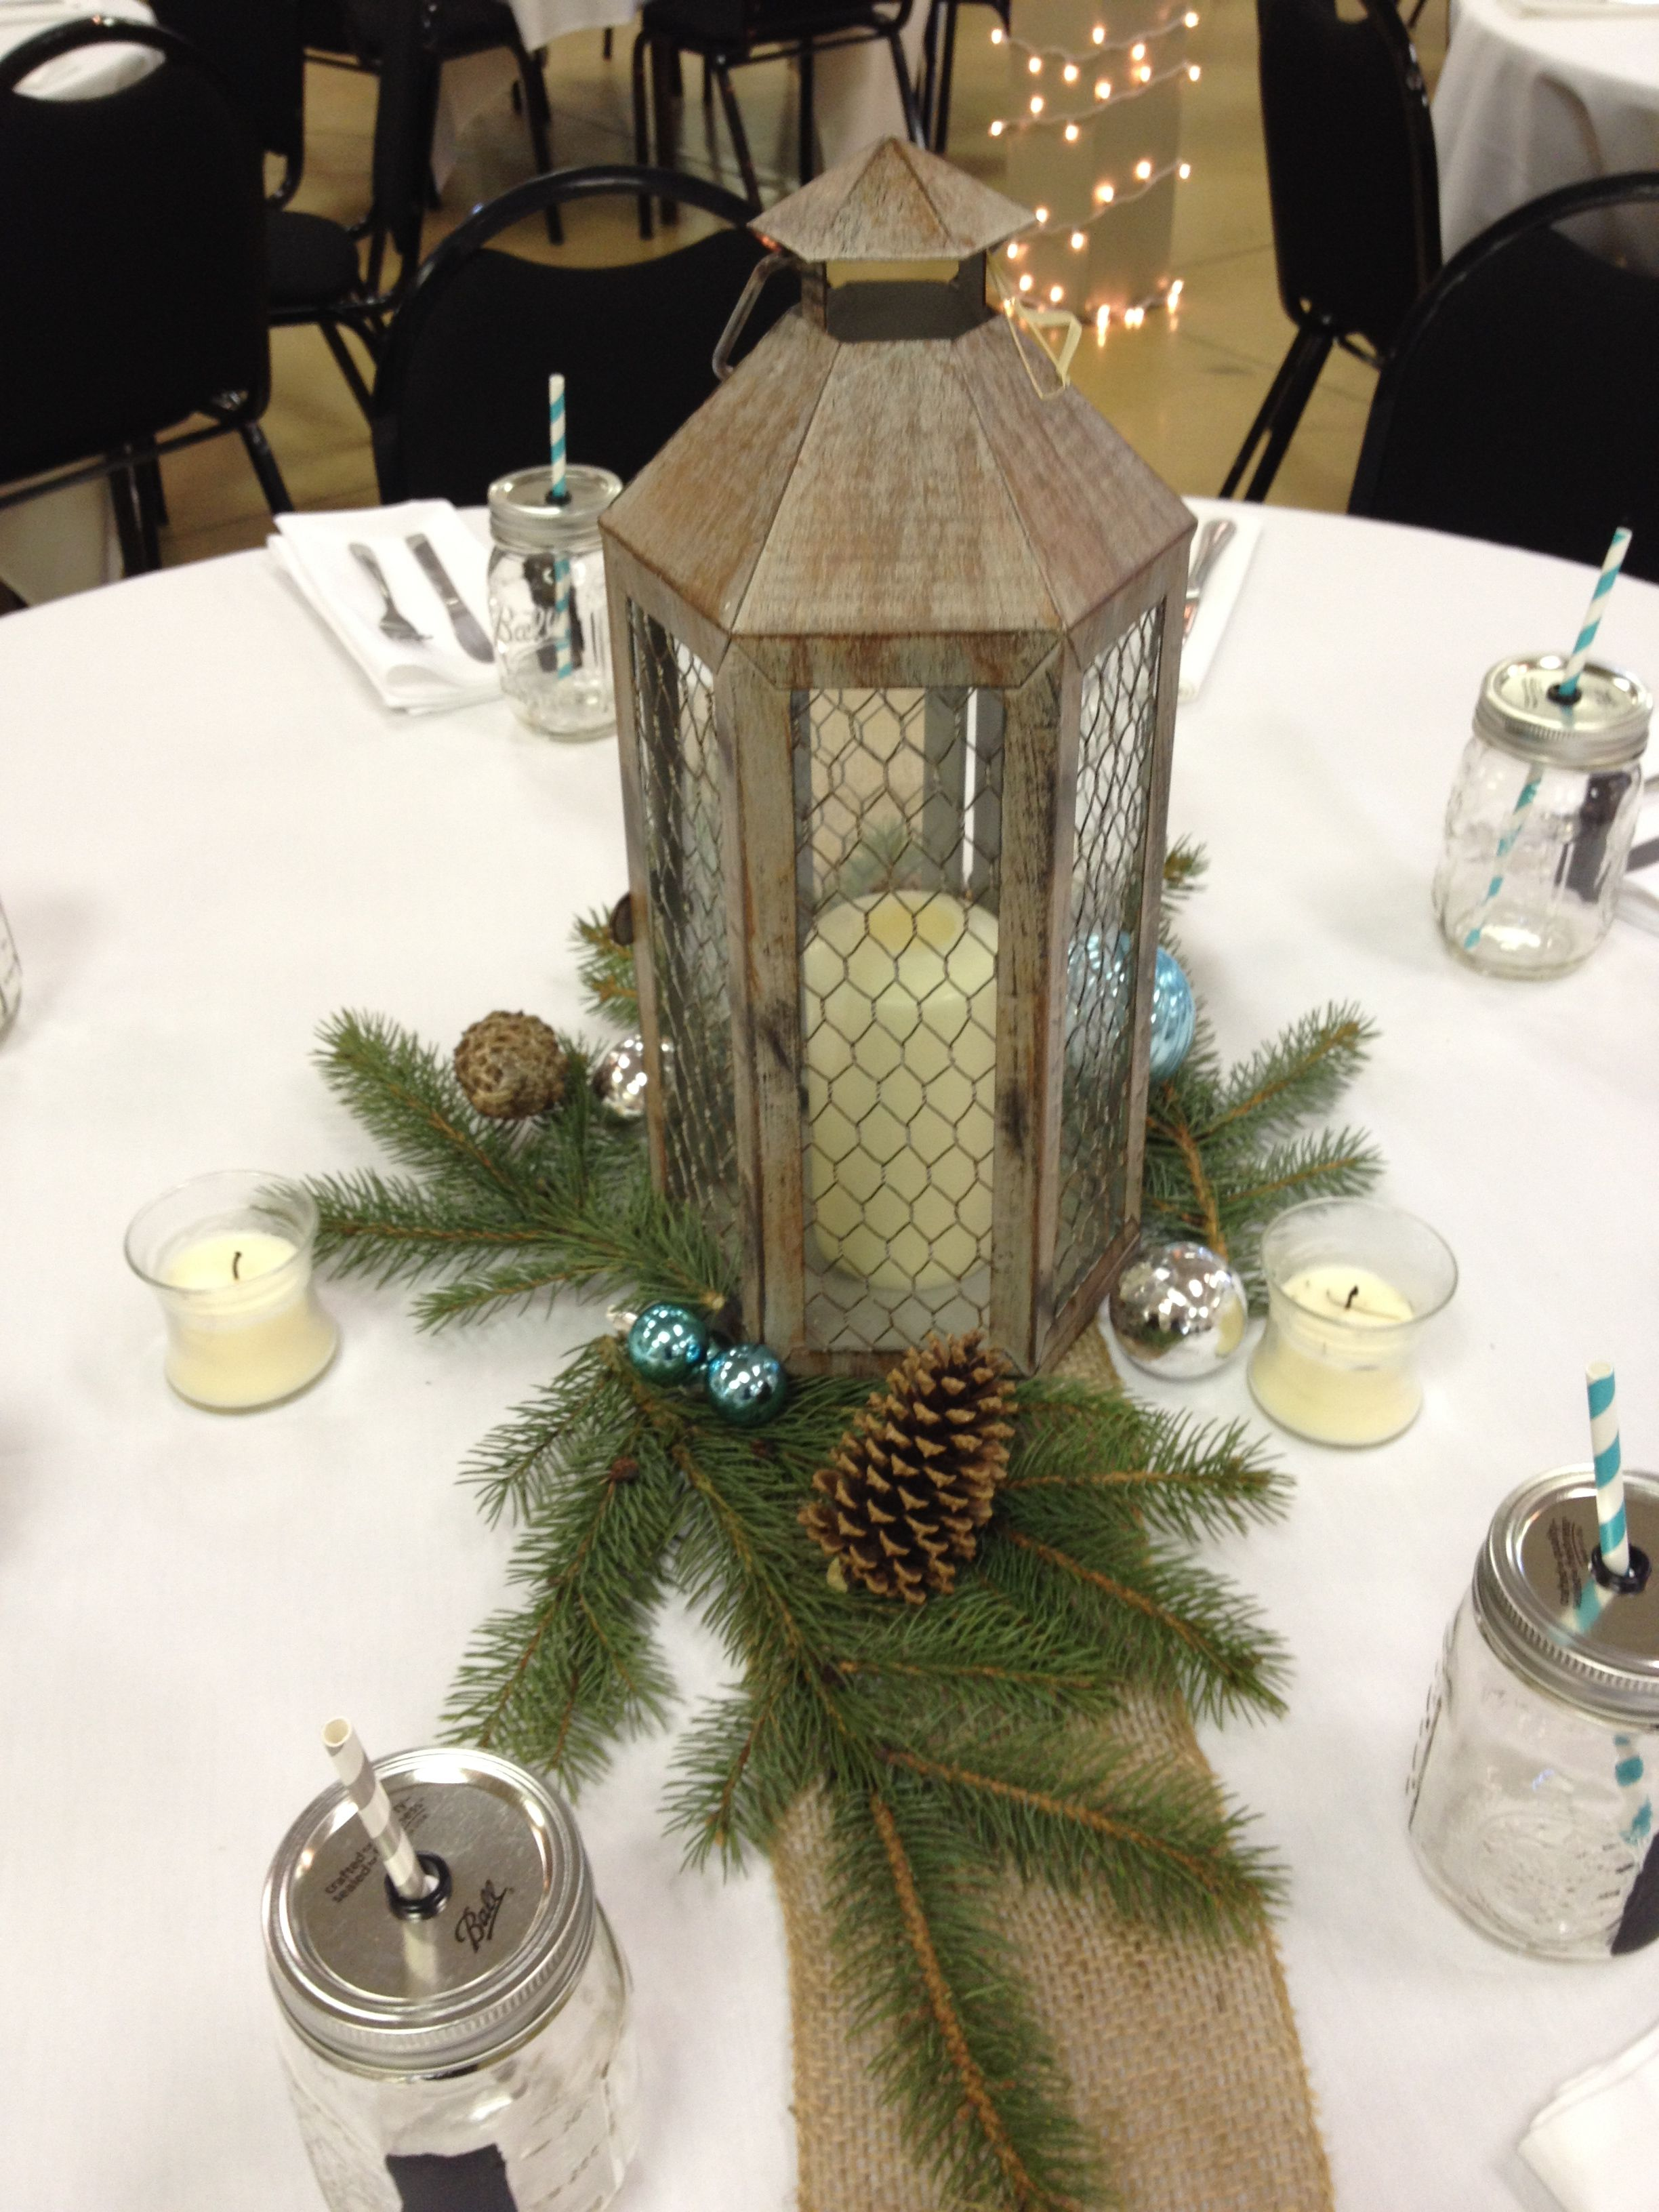 Simple Winter Wedding Centerpiece With A Lantern In The Center